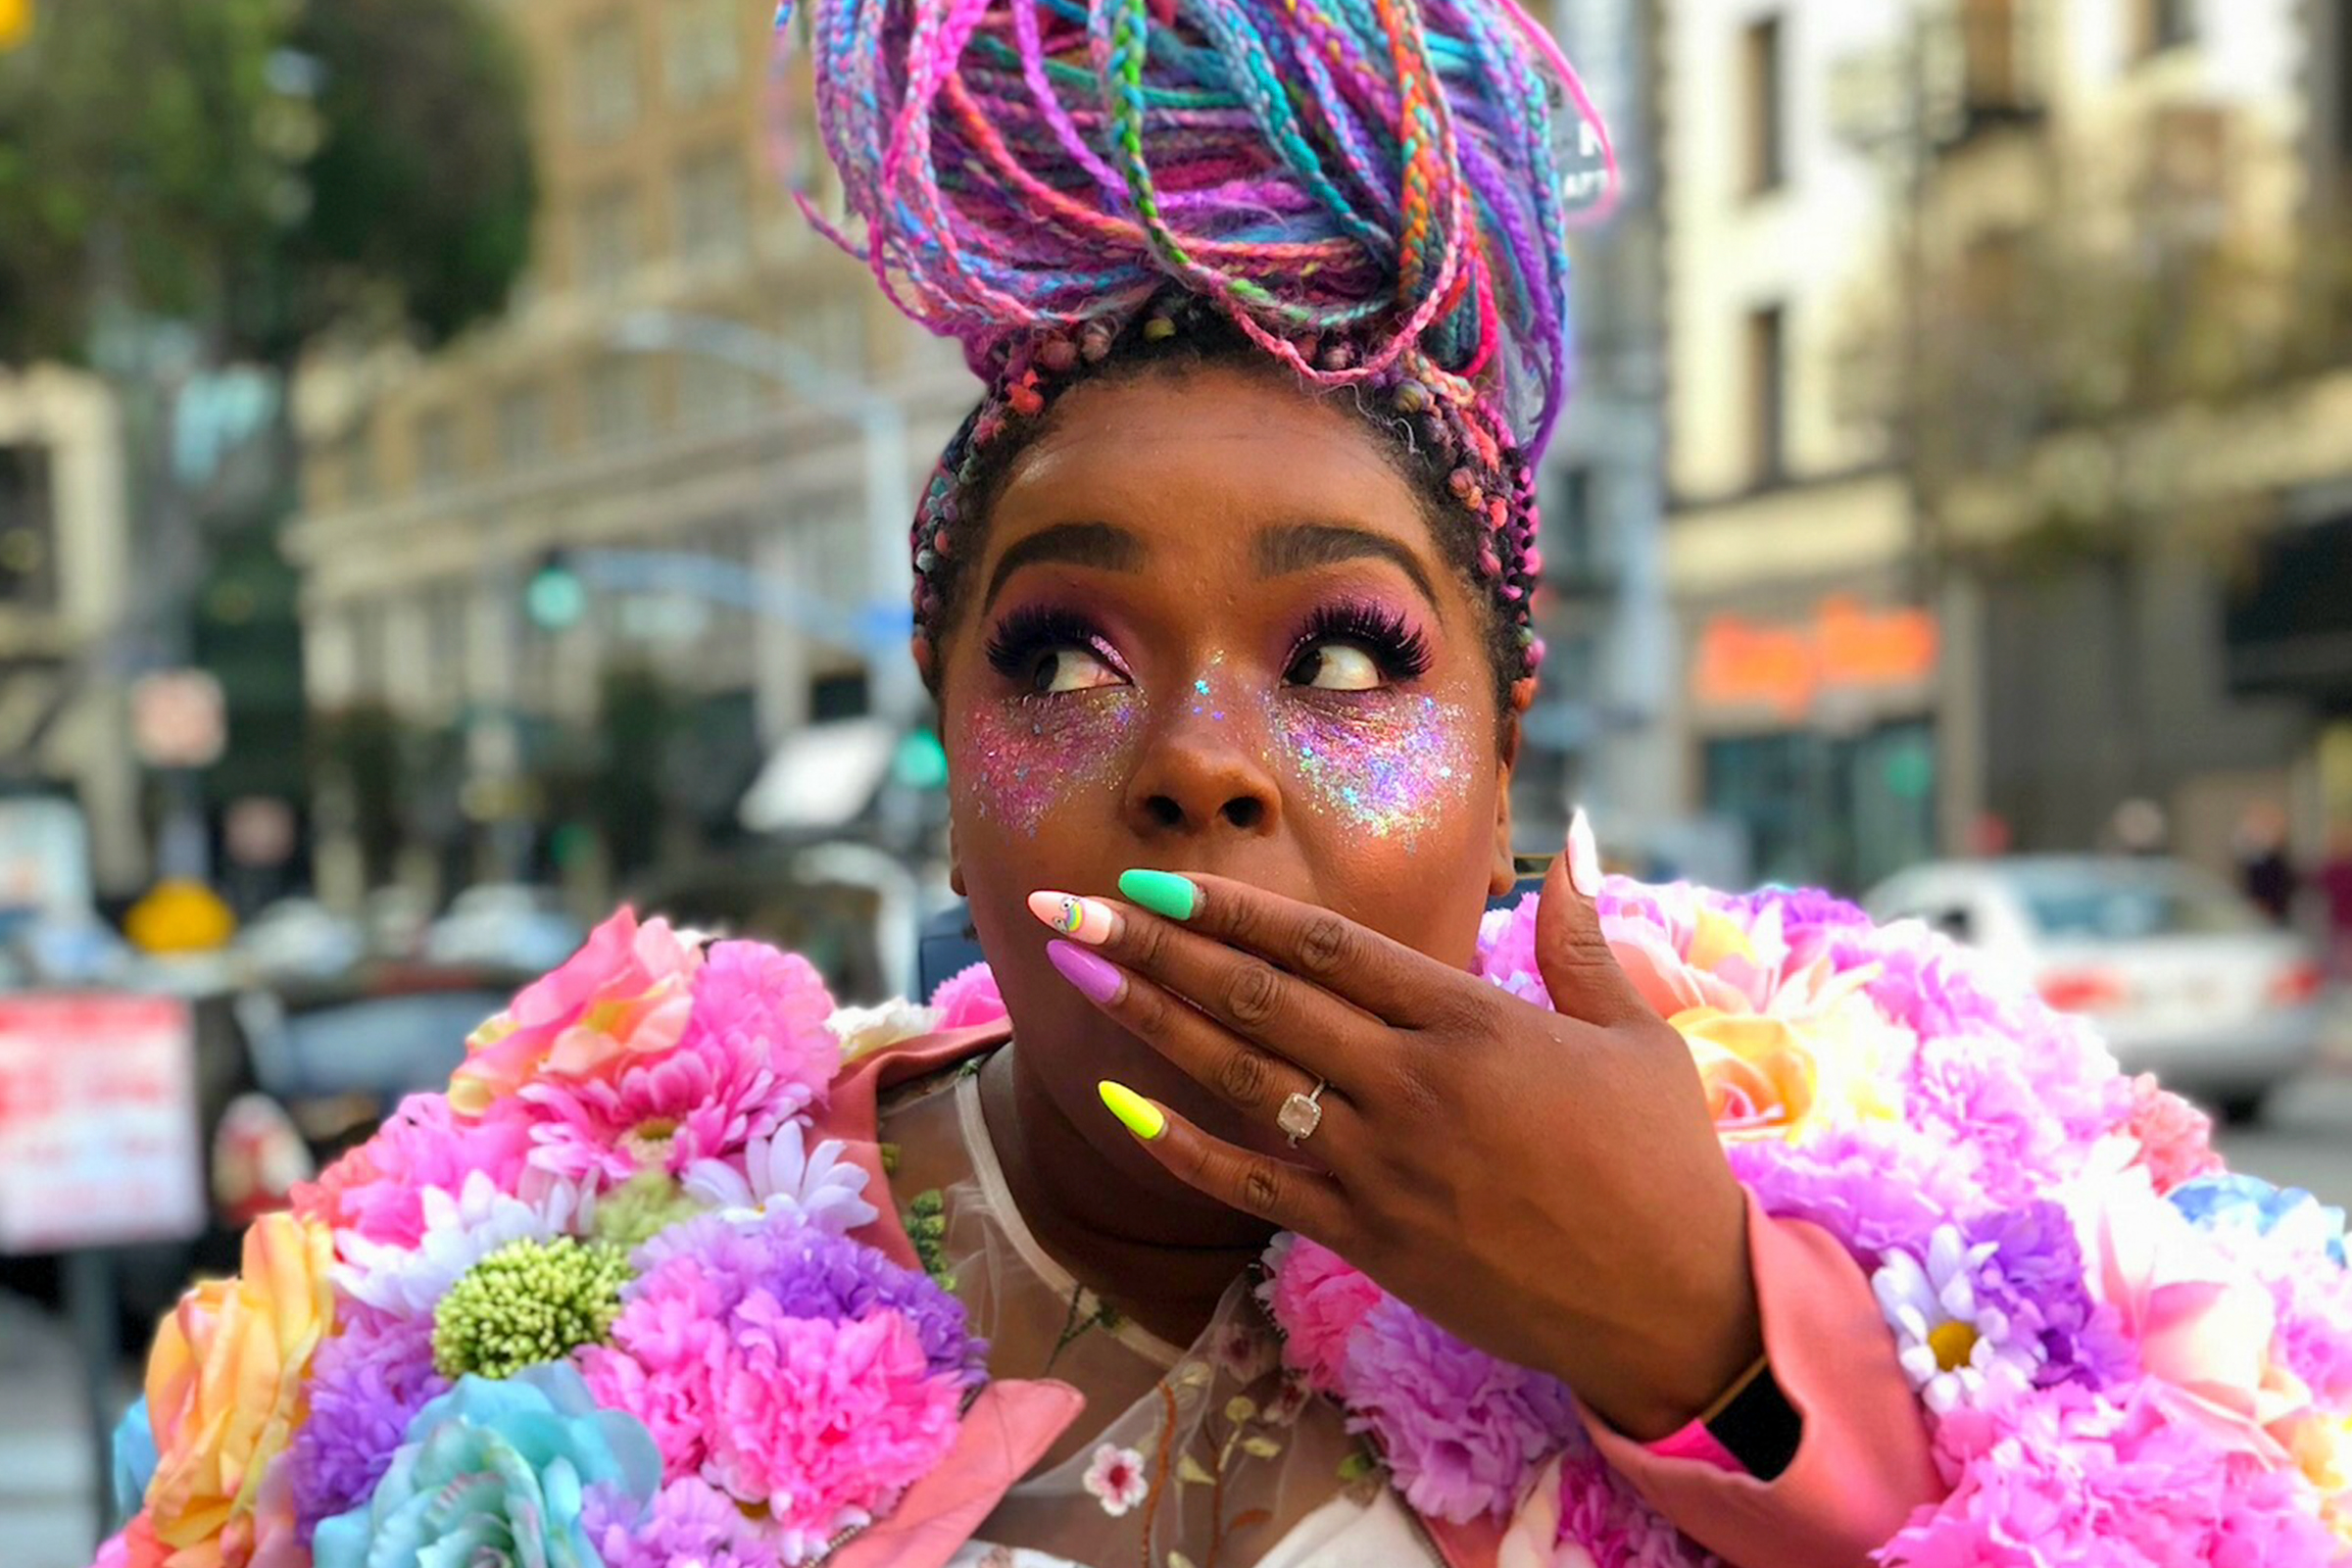 Amina Mucciolo, a Black person with colorful hair pulled into a bun, poses on a street corner with their hand over their mouth